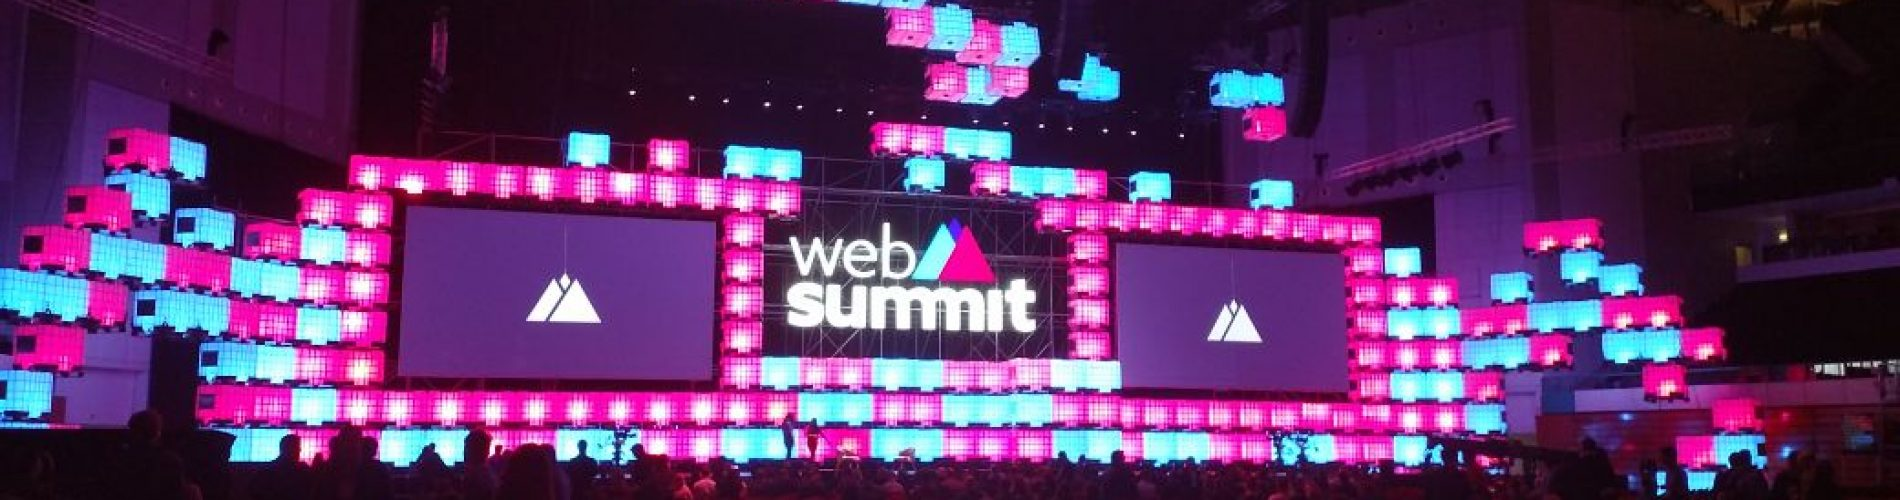 inteligencia-artificial-e-relacoes-humanas-dao-o-tom-do-web-summit-2017-acompanhe-os-principais-acontecimentos-do-evento